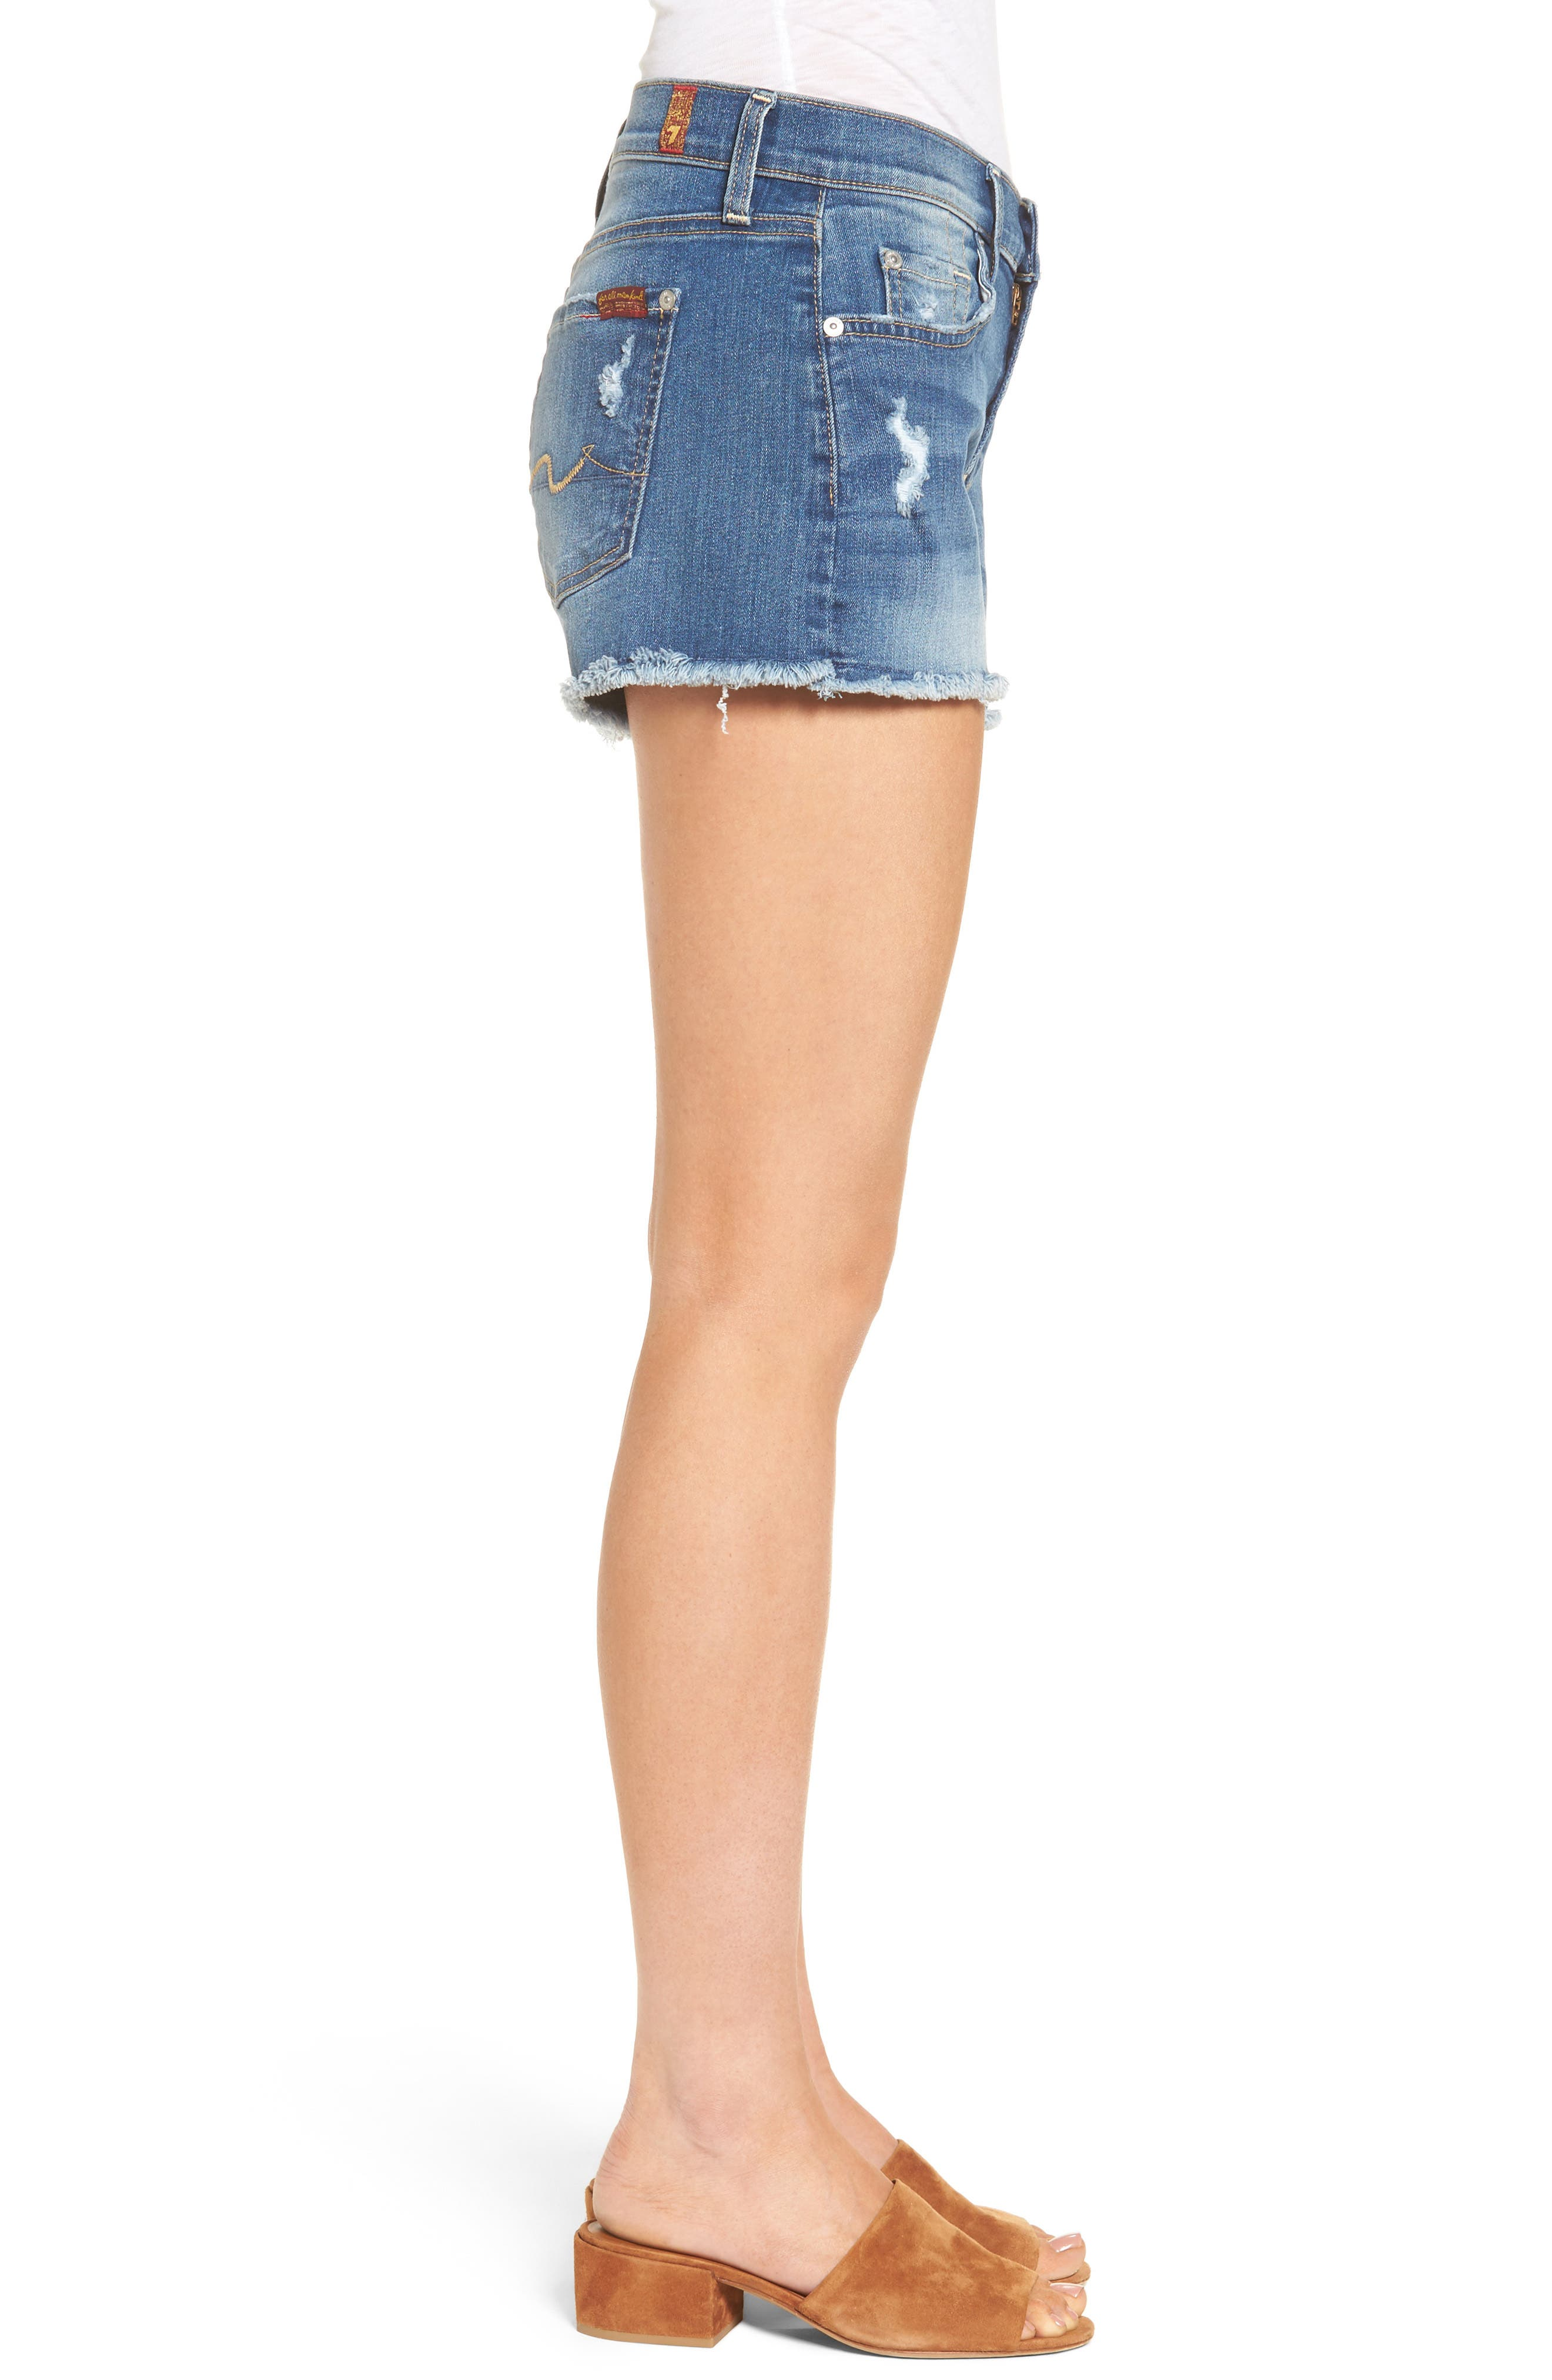 Alternate Image 3  - 7 For All Mankind® High Waist Cutoff Denim Shorts (Ocean Mist) (Nordstrom Exclusive Color)